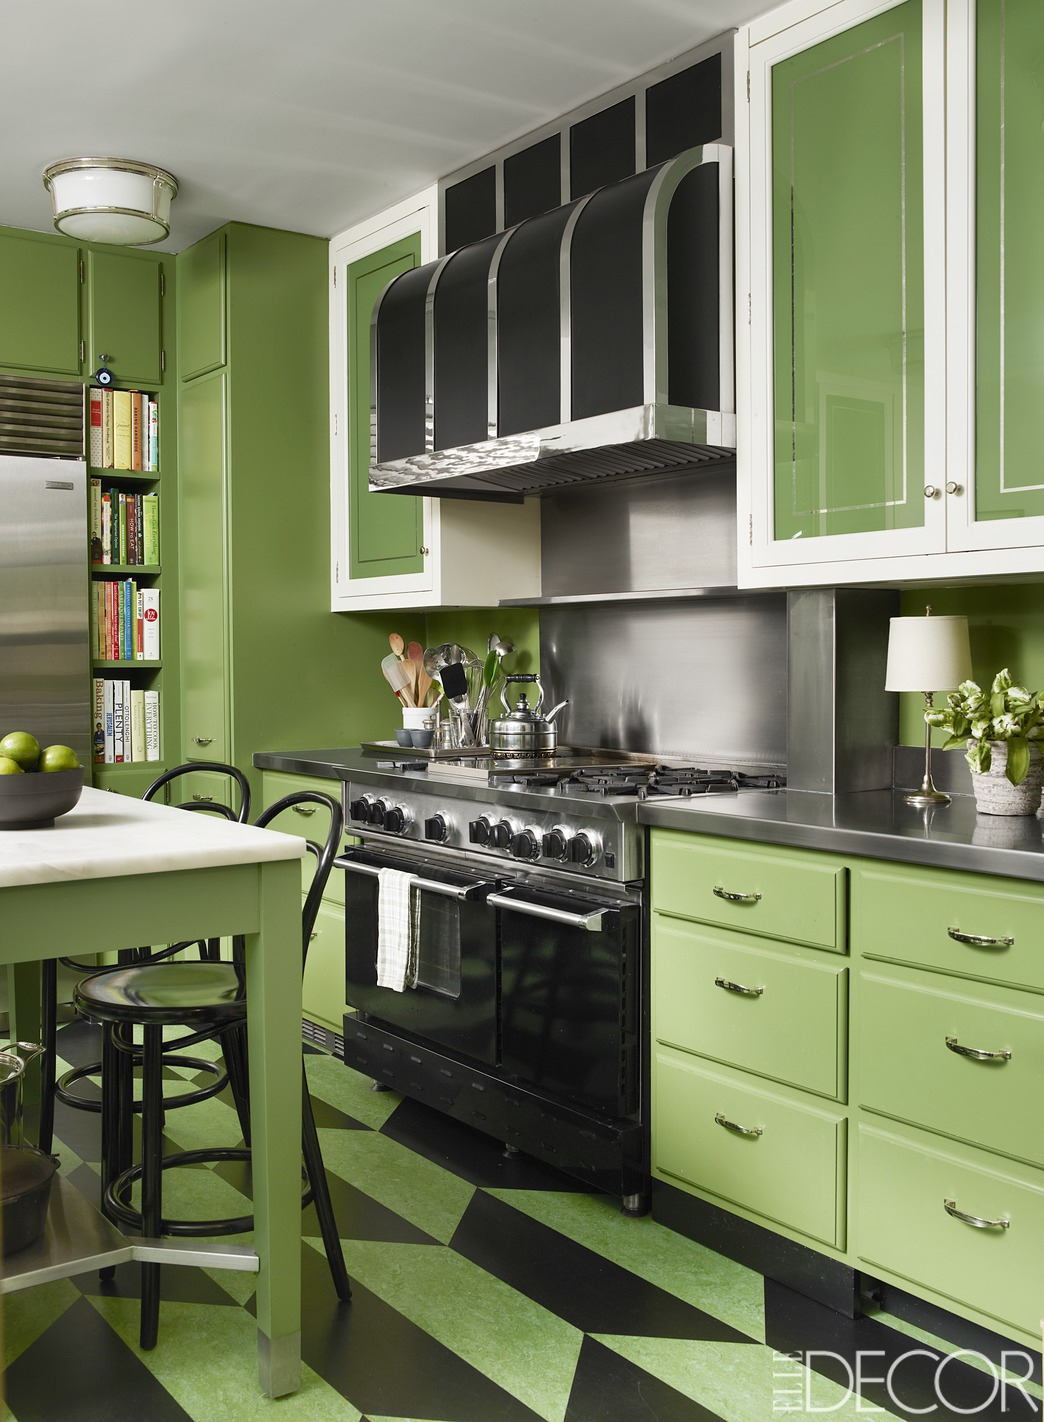 Cabinets For Kitchens Design Ideas1044 X 1422